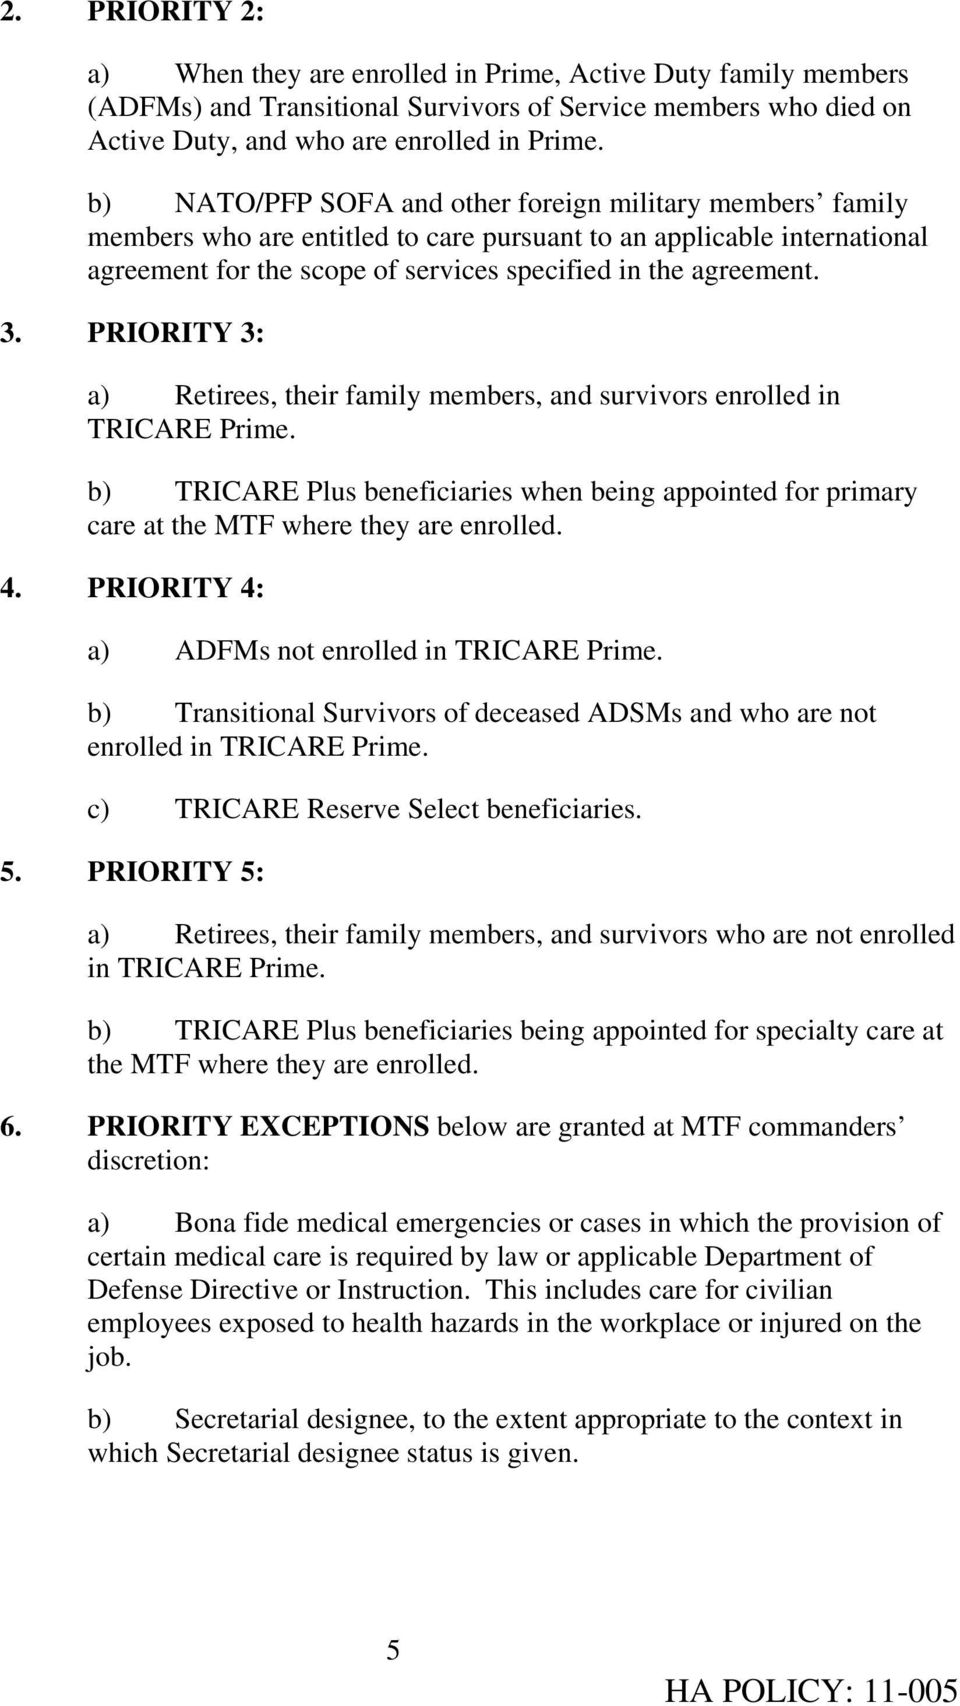 PRIORITY 3: a) Retirees, their family members, and survivors enrolled in TRICARE Prime. b) TRICARE Plus beneficiaries when being appointed for primary care at the MTF where they are enrolled. 4.